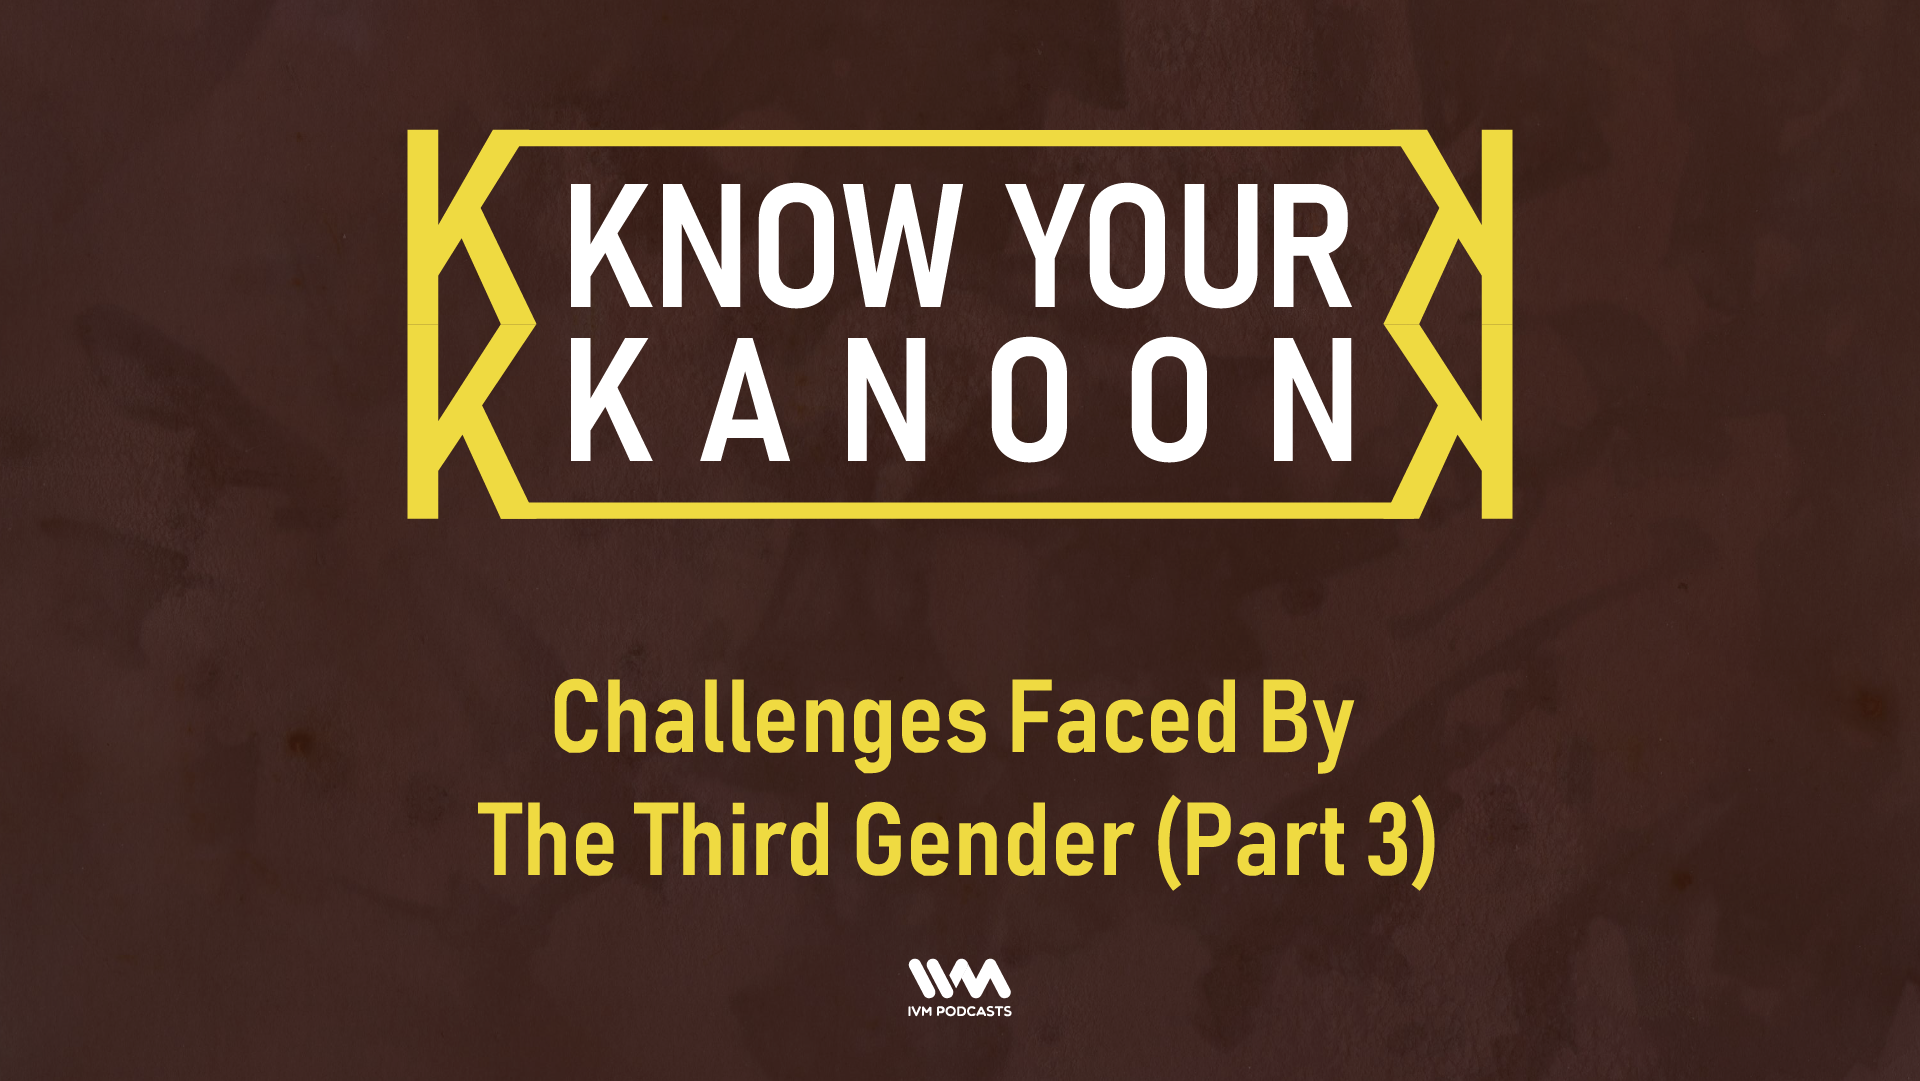 KnowYourKanoonEpisode14.png